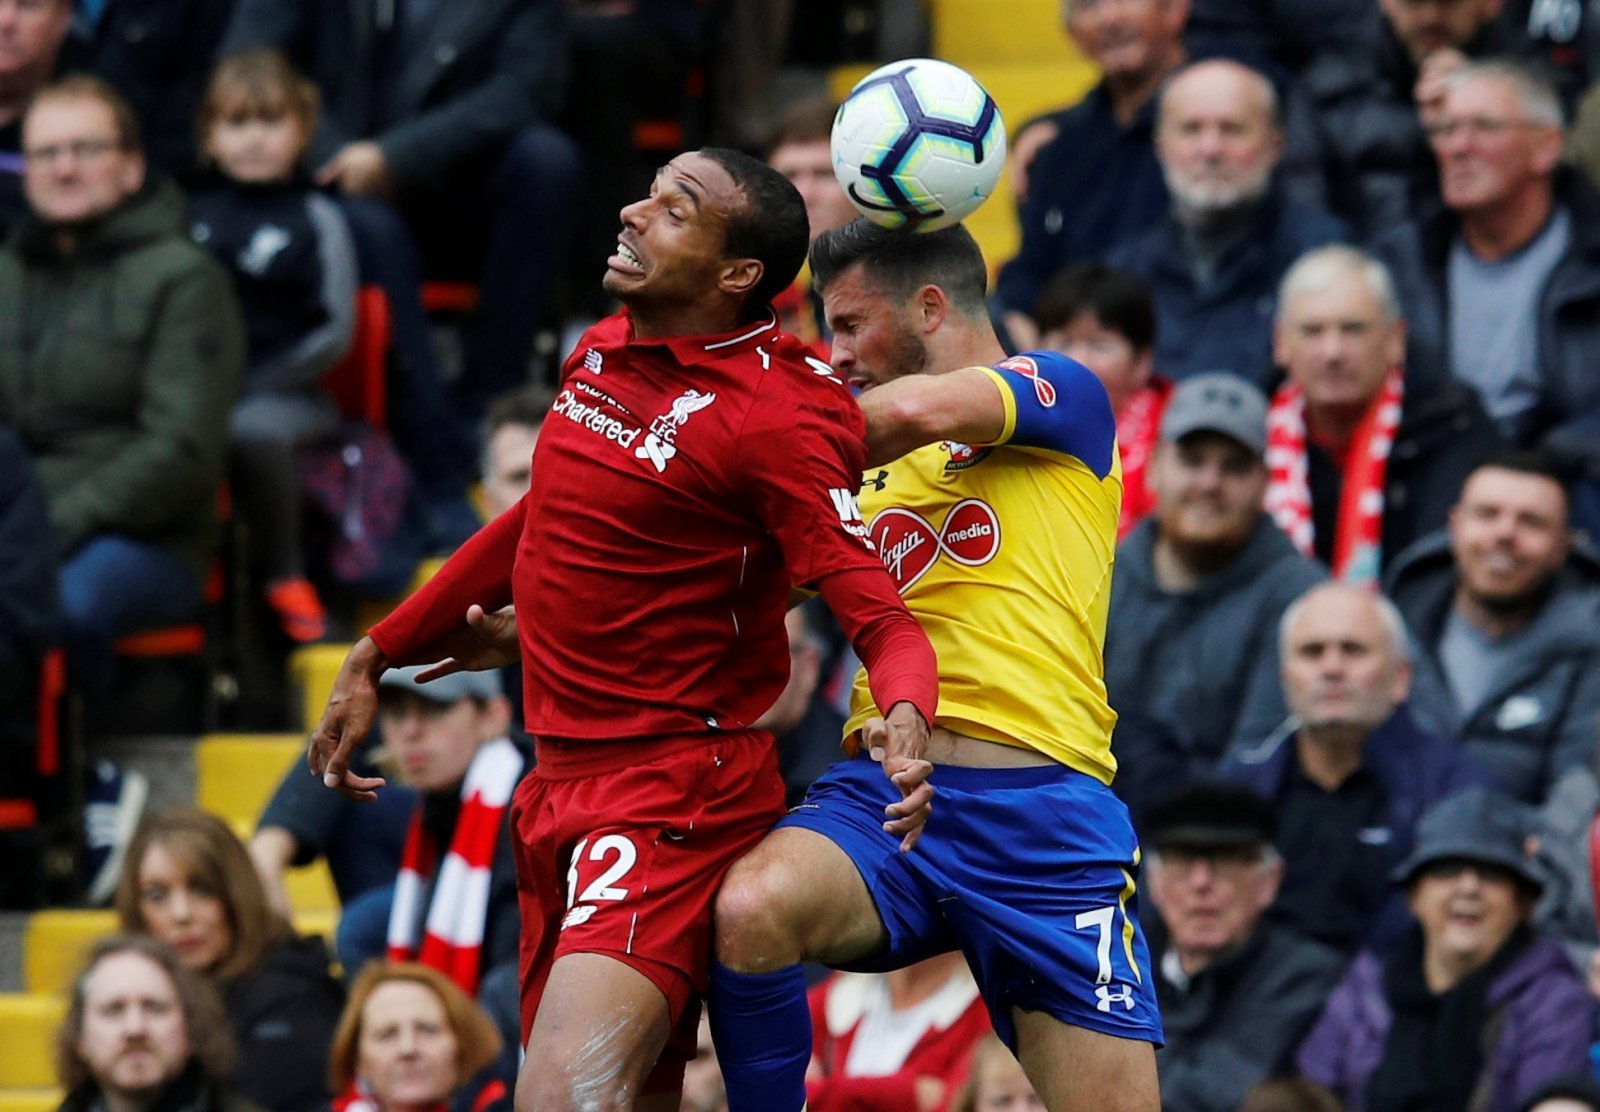 Joel Matip would be a brilliant option on-loan for Aston Villa